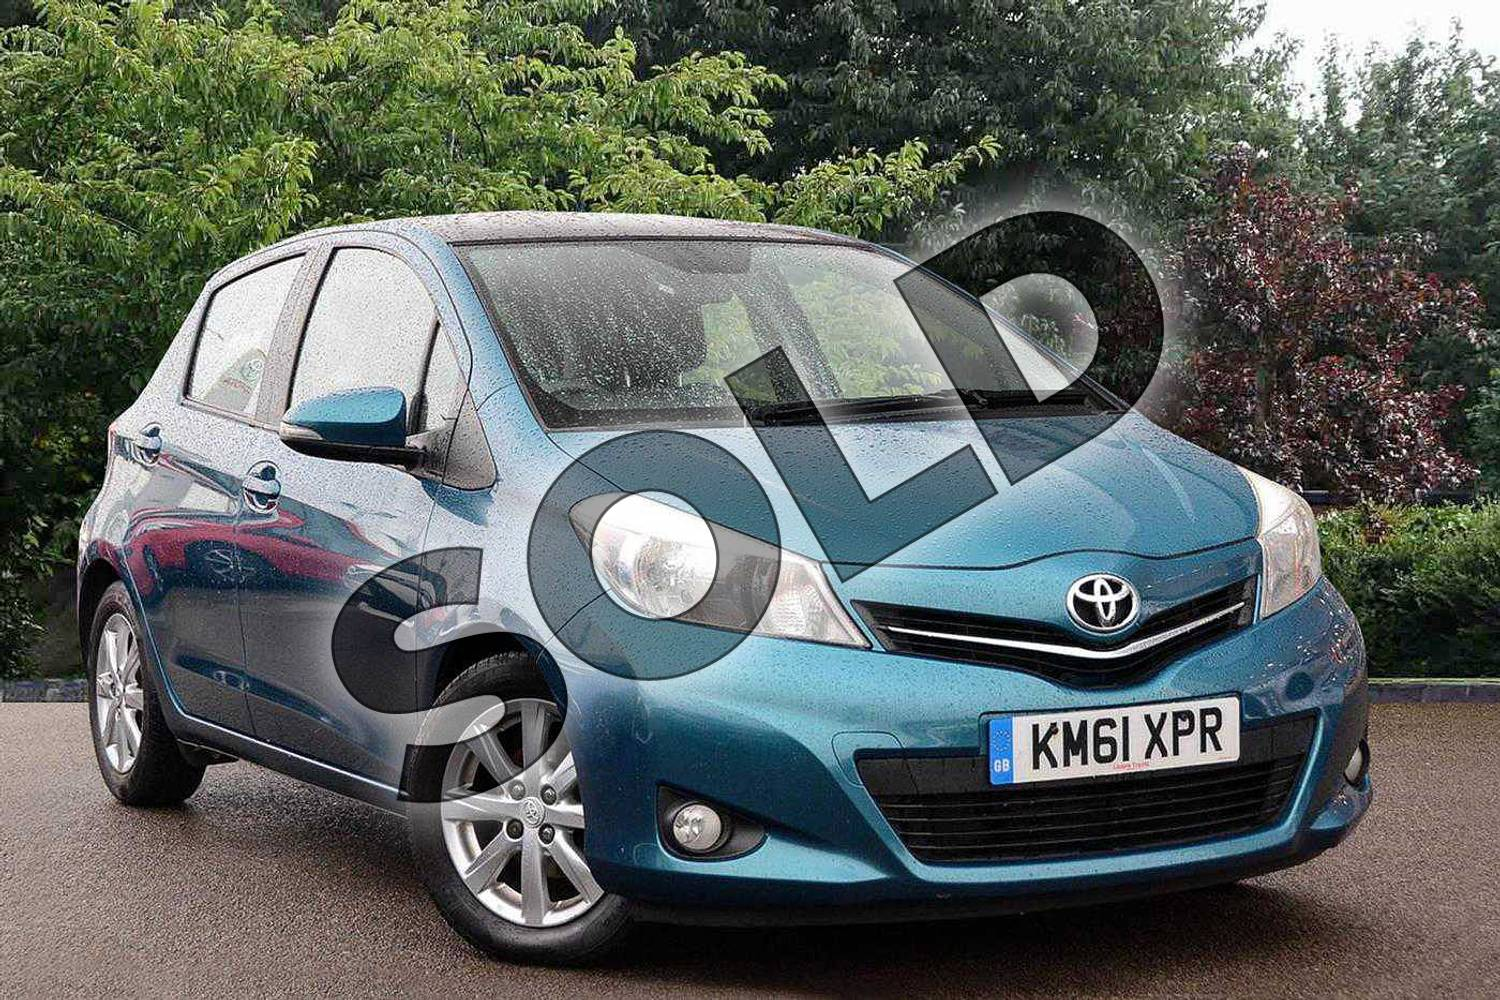 2012 Toyota Yaris Hatchback 1.33 VVT-i T Spirit 5dr in Green at Listers Toyota Nuneaton